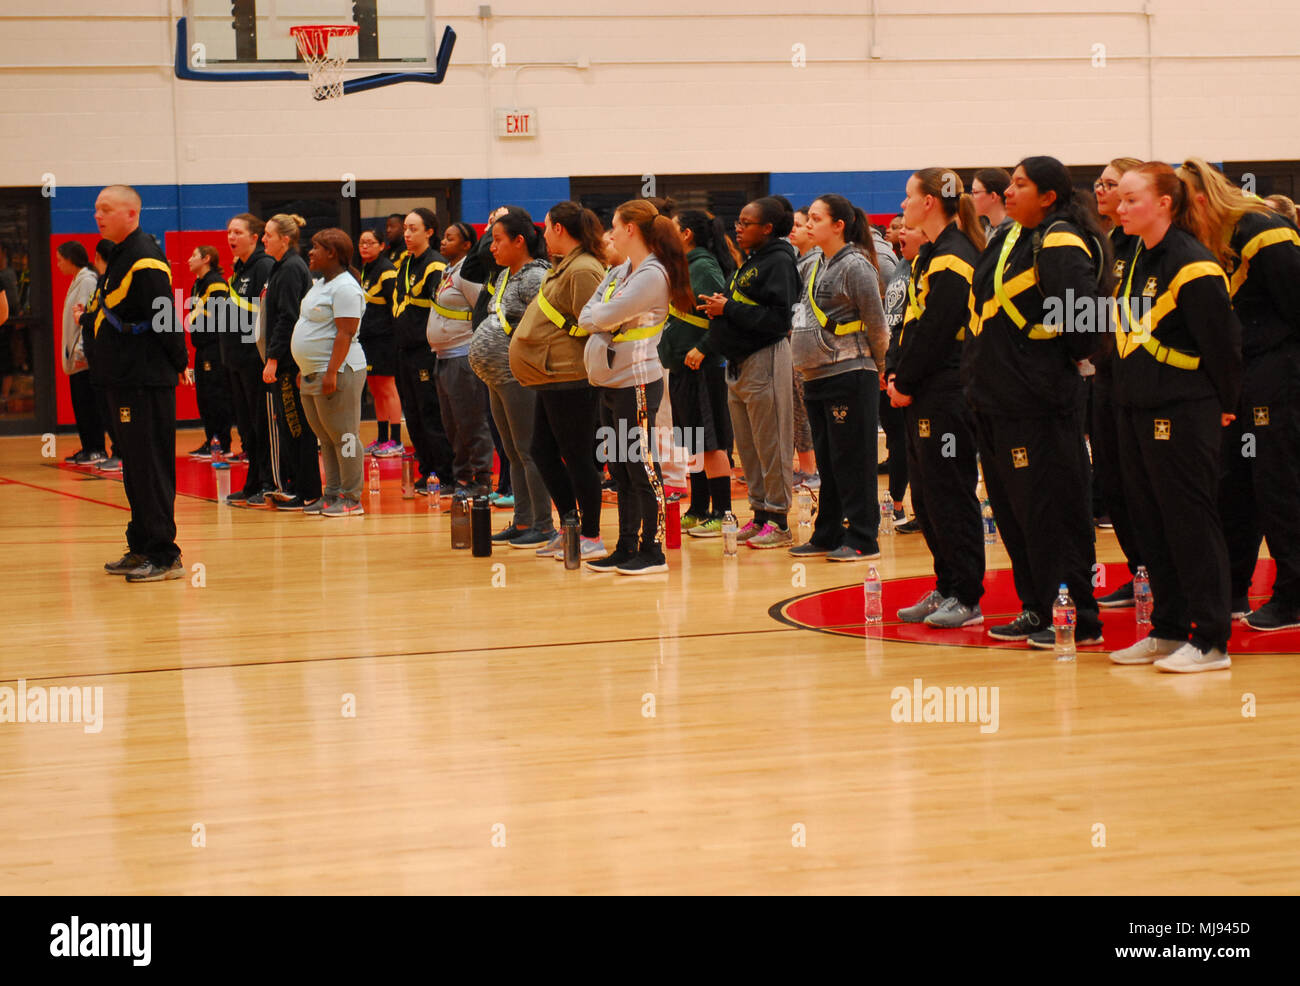 Soldiers from the 1st Cavalry Division get into formation for Army Pregnancy Postpartum Physical Training on Monday at Abrams Gym. The Army Pregnancy Postpartum Physical Training (P3T) helps female Soldiers promote bringing healthy Military children into the world, which is especially important during the Month of the Military Child. - Stock Image